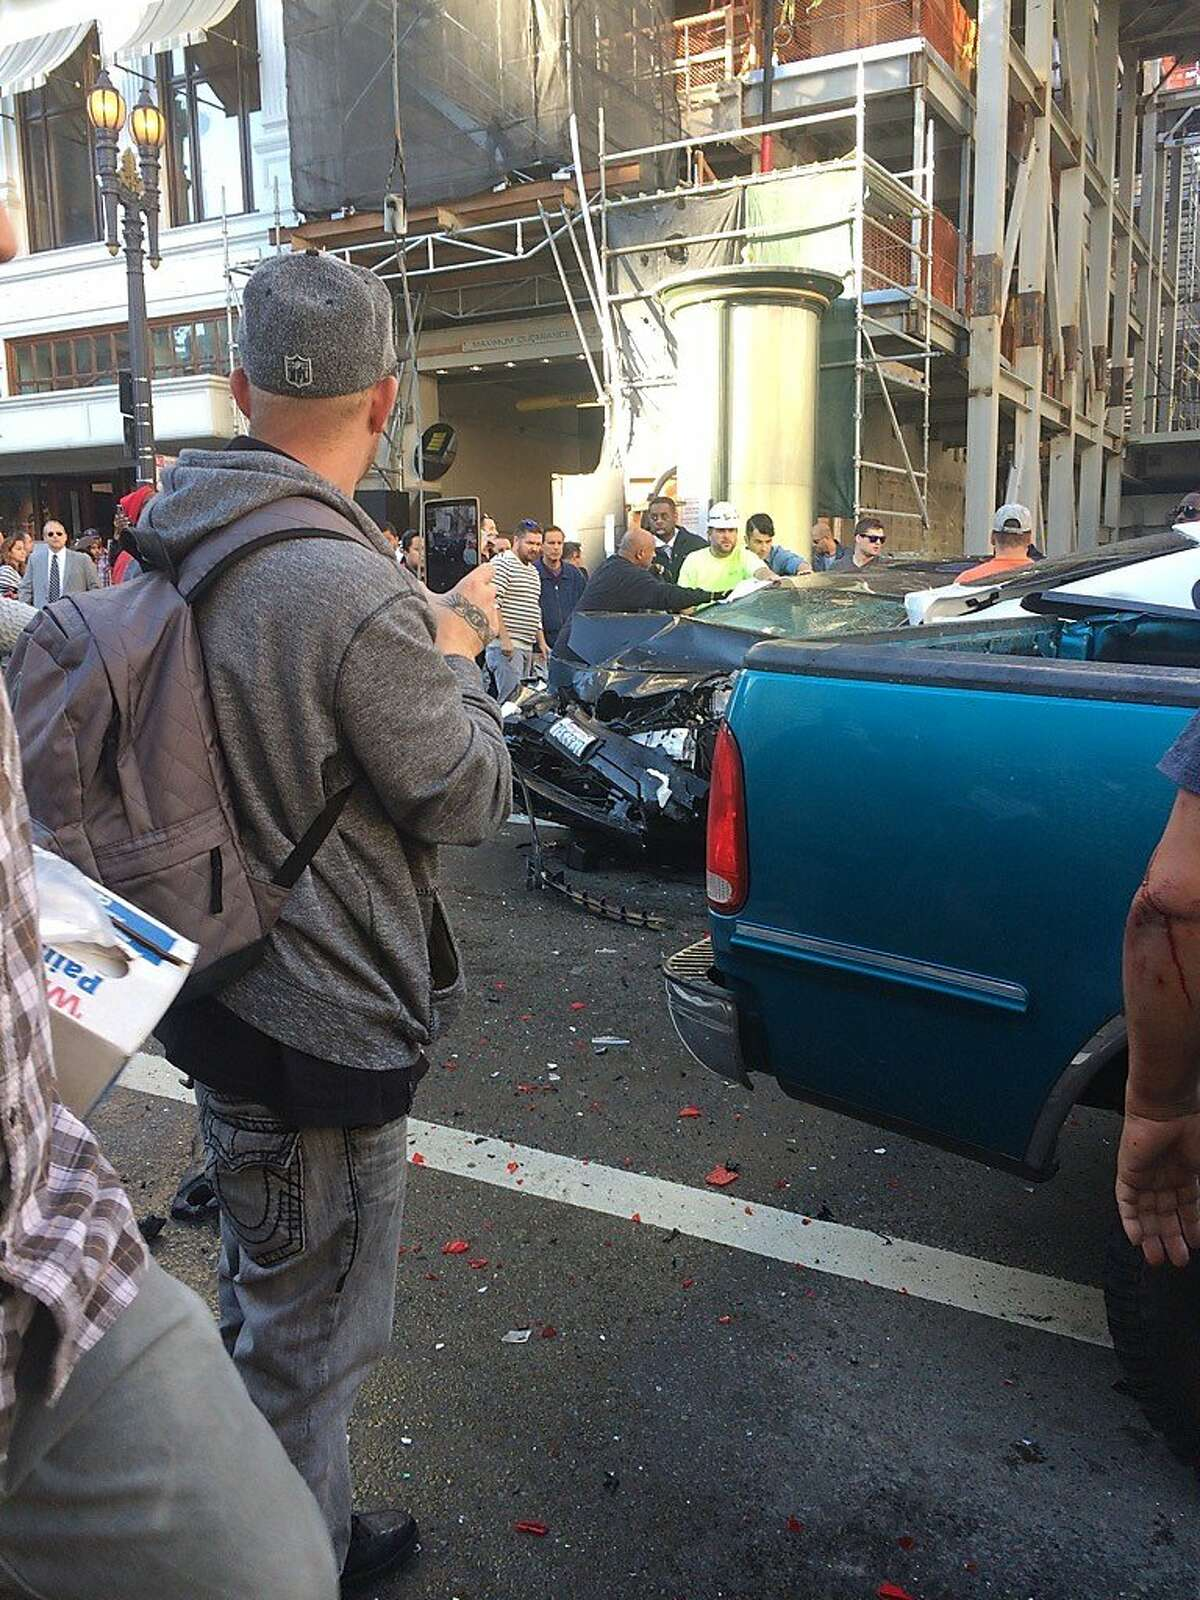 Seven people were reportedly injured after scaffolding collapsed when a tour bus made contact with it at the new Apple store location which is under construction at Stockton and Post streets on Friday, Nov. 13, 2015 in San Francisco, Calif.